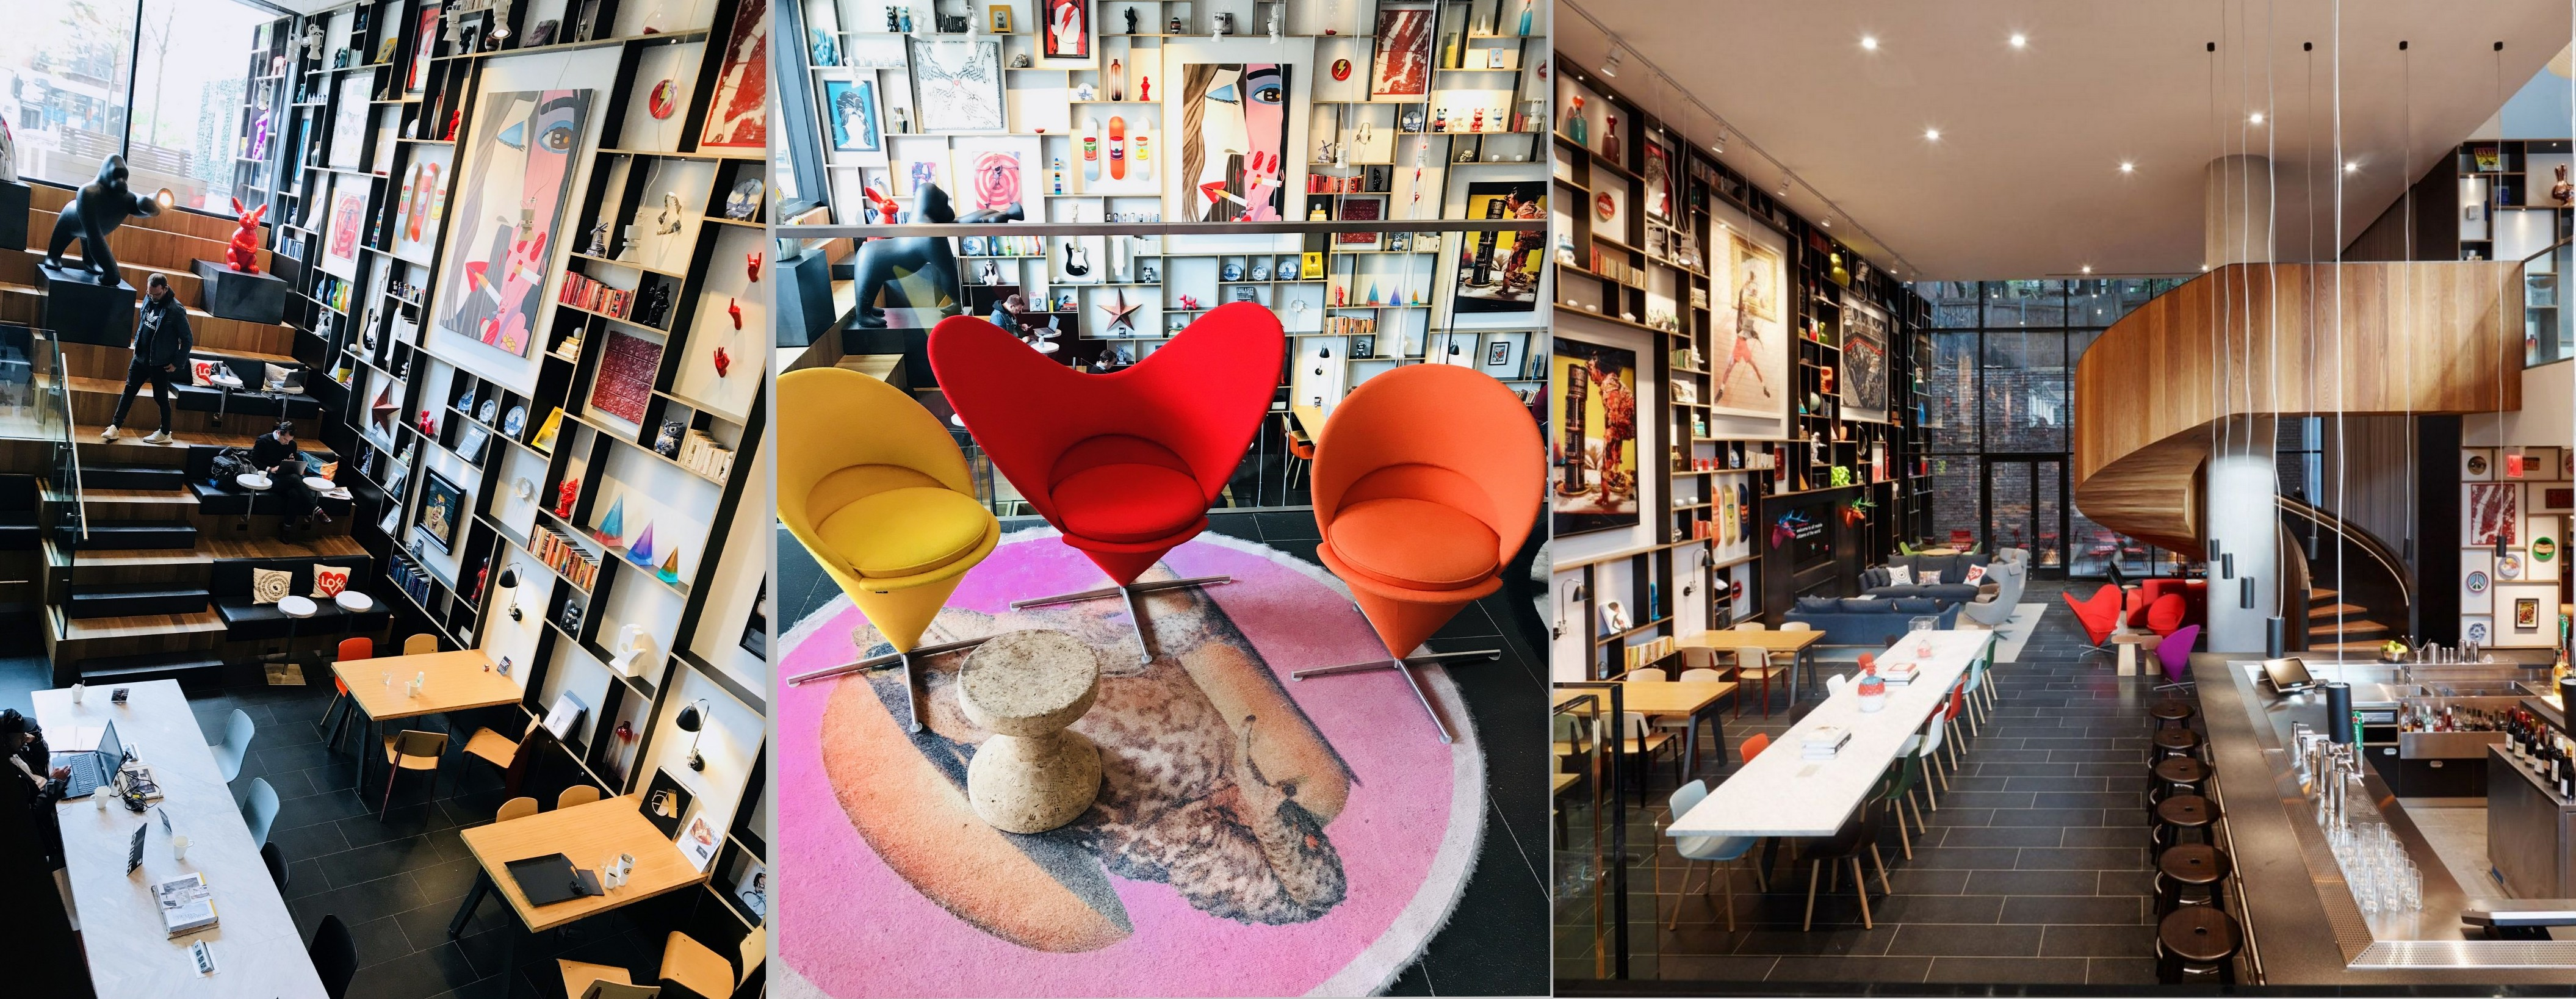 citizen m, instagramable nyc cafes, instaworthy nyc cafes, instaworthy nyc